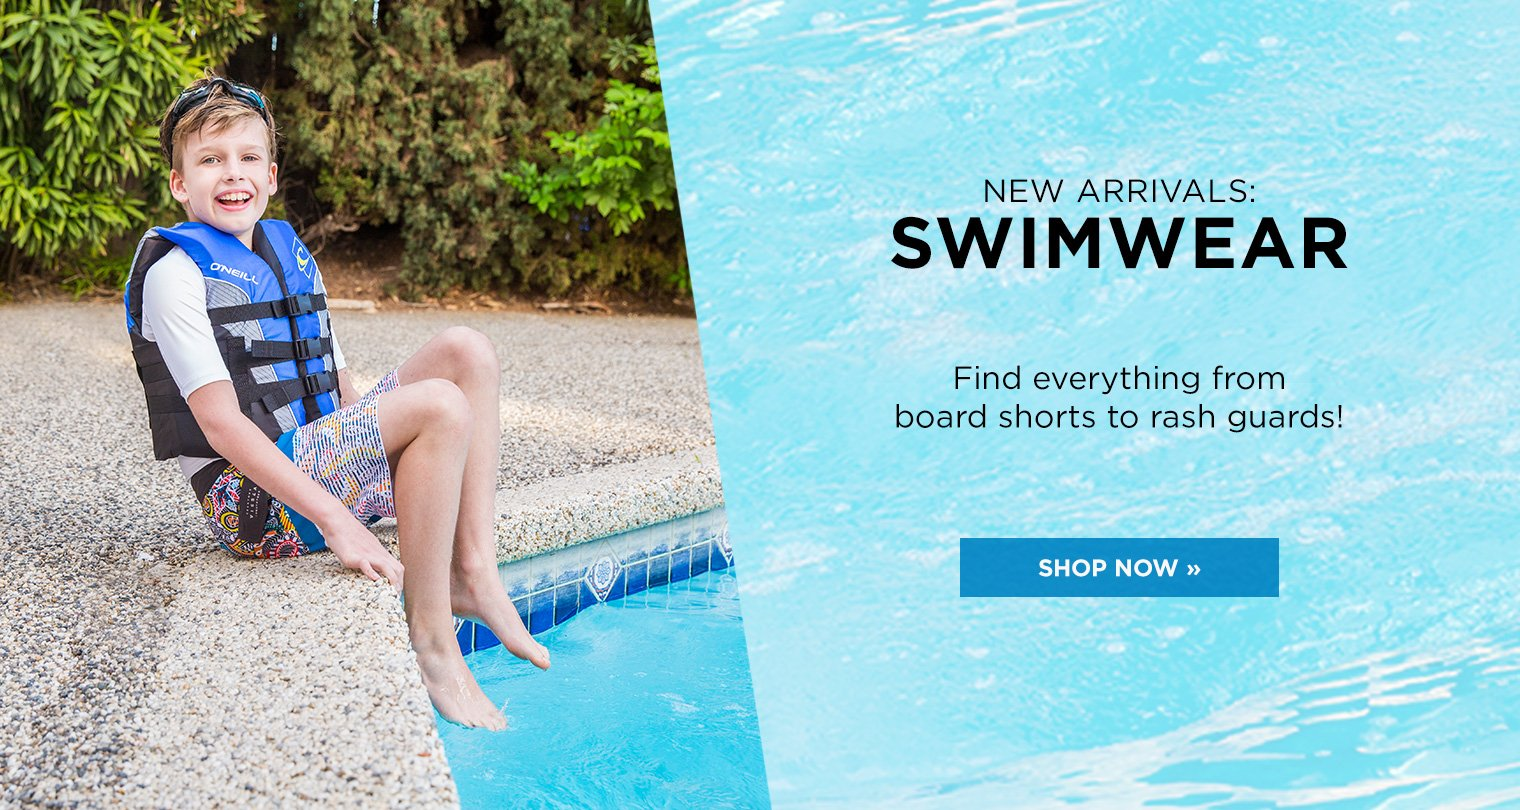 Shop Boys New Arrivals Swimwear Image of Boy sitting on edge of a pool